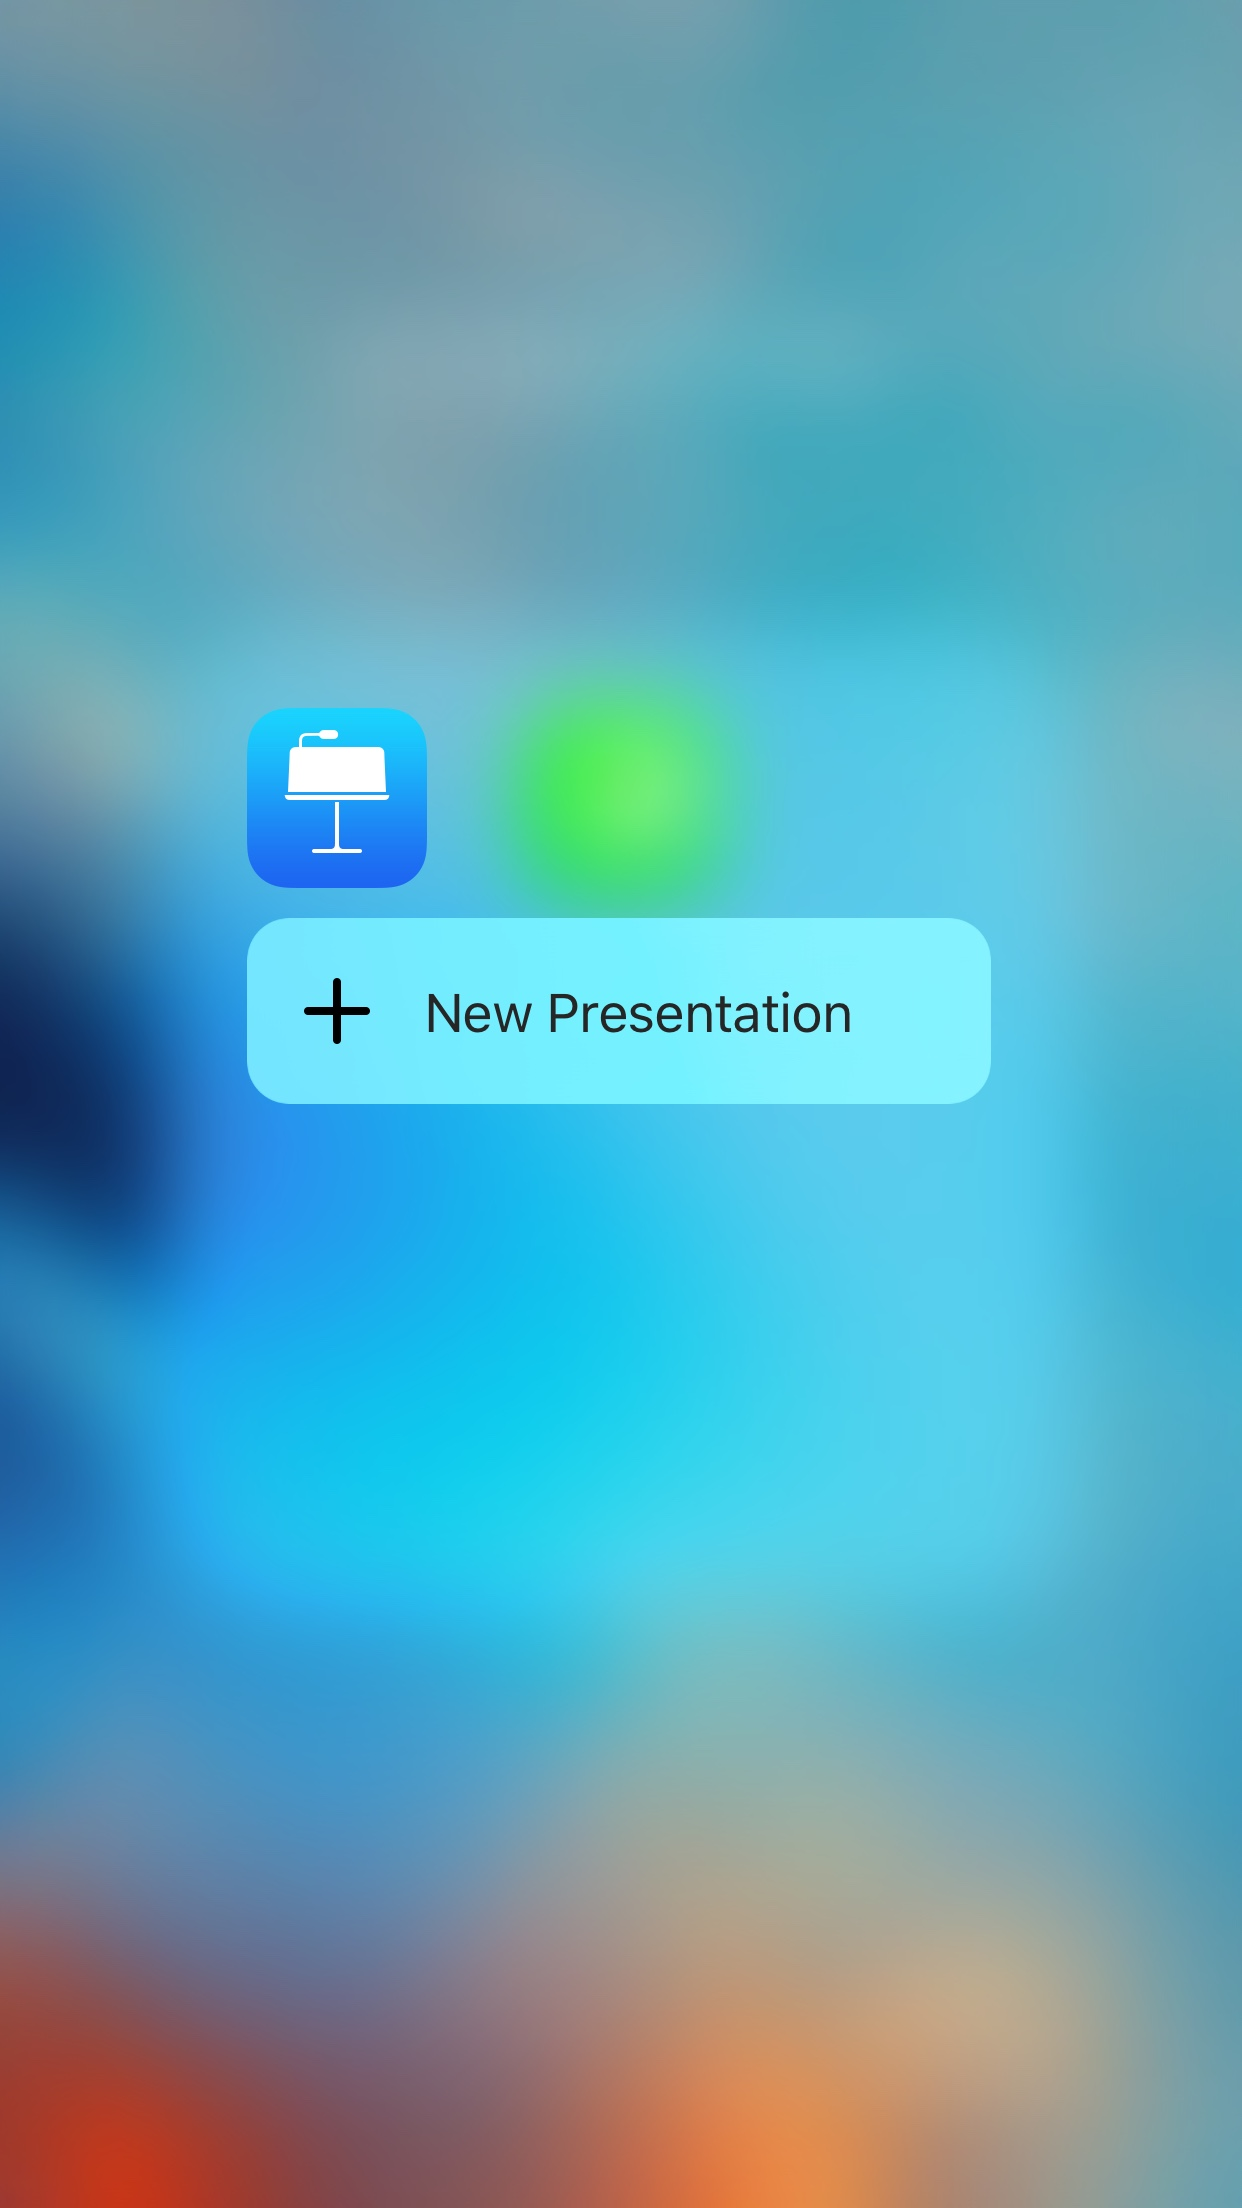 Apple Updates iWork with Multitasking and 3D Touch Support